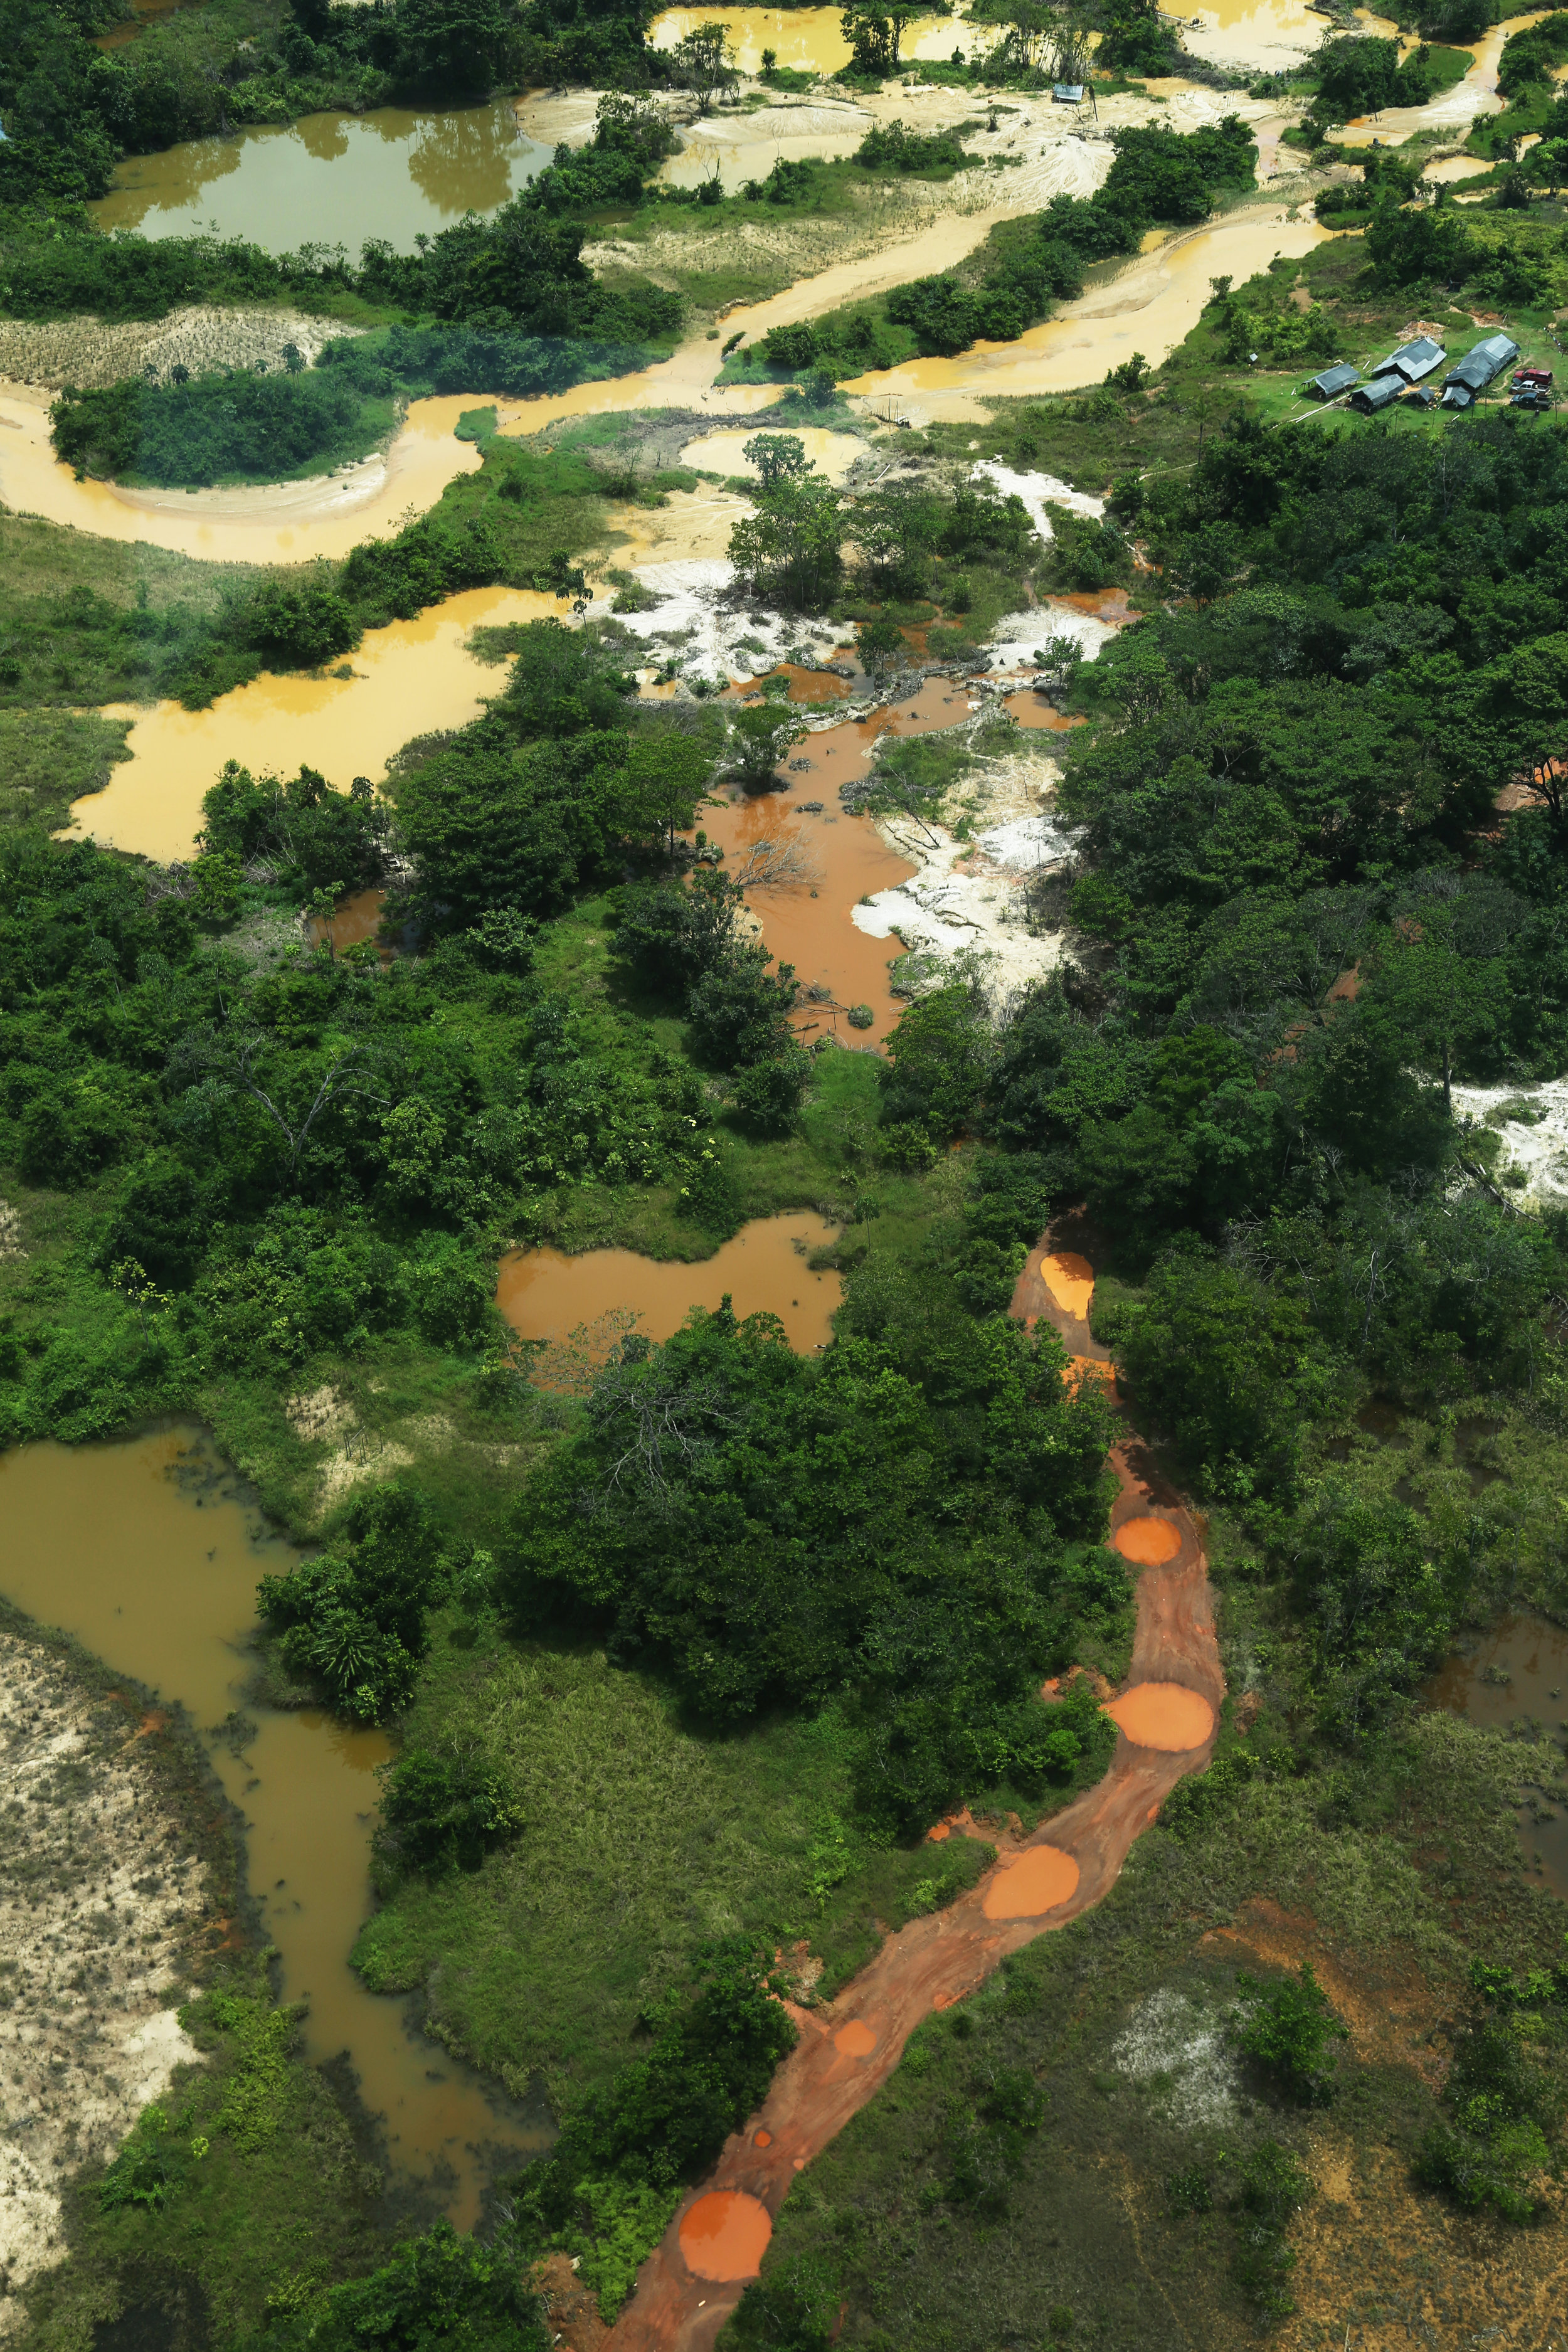 AERIAL OF A GOLD MINING SITE: BECAUSE GUYANA HAS NOT TAPPED INTO THE OIL AND GAS ENERGY SECTOR DUE TO ITS NEIGHBORS BEING VENEZUELA, MINING IS ONE OF THE LARGEST EXTRACTIVE INDUSTRIES WITHIN GUYANA.